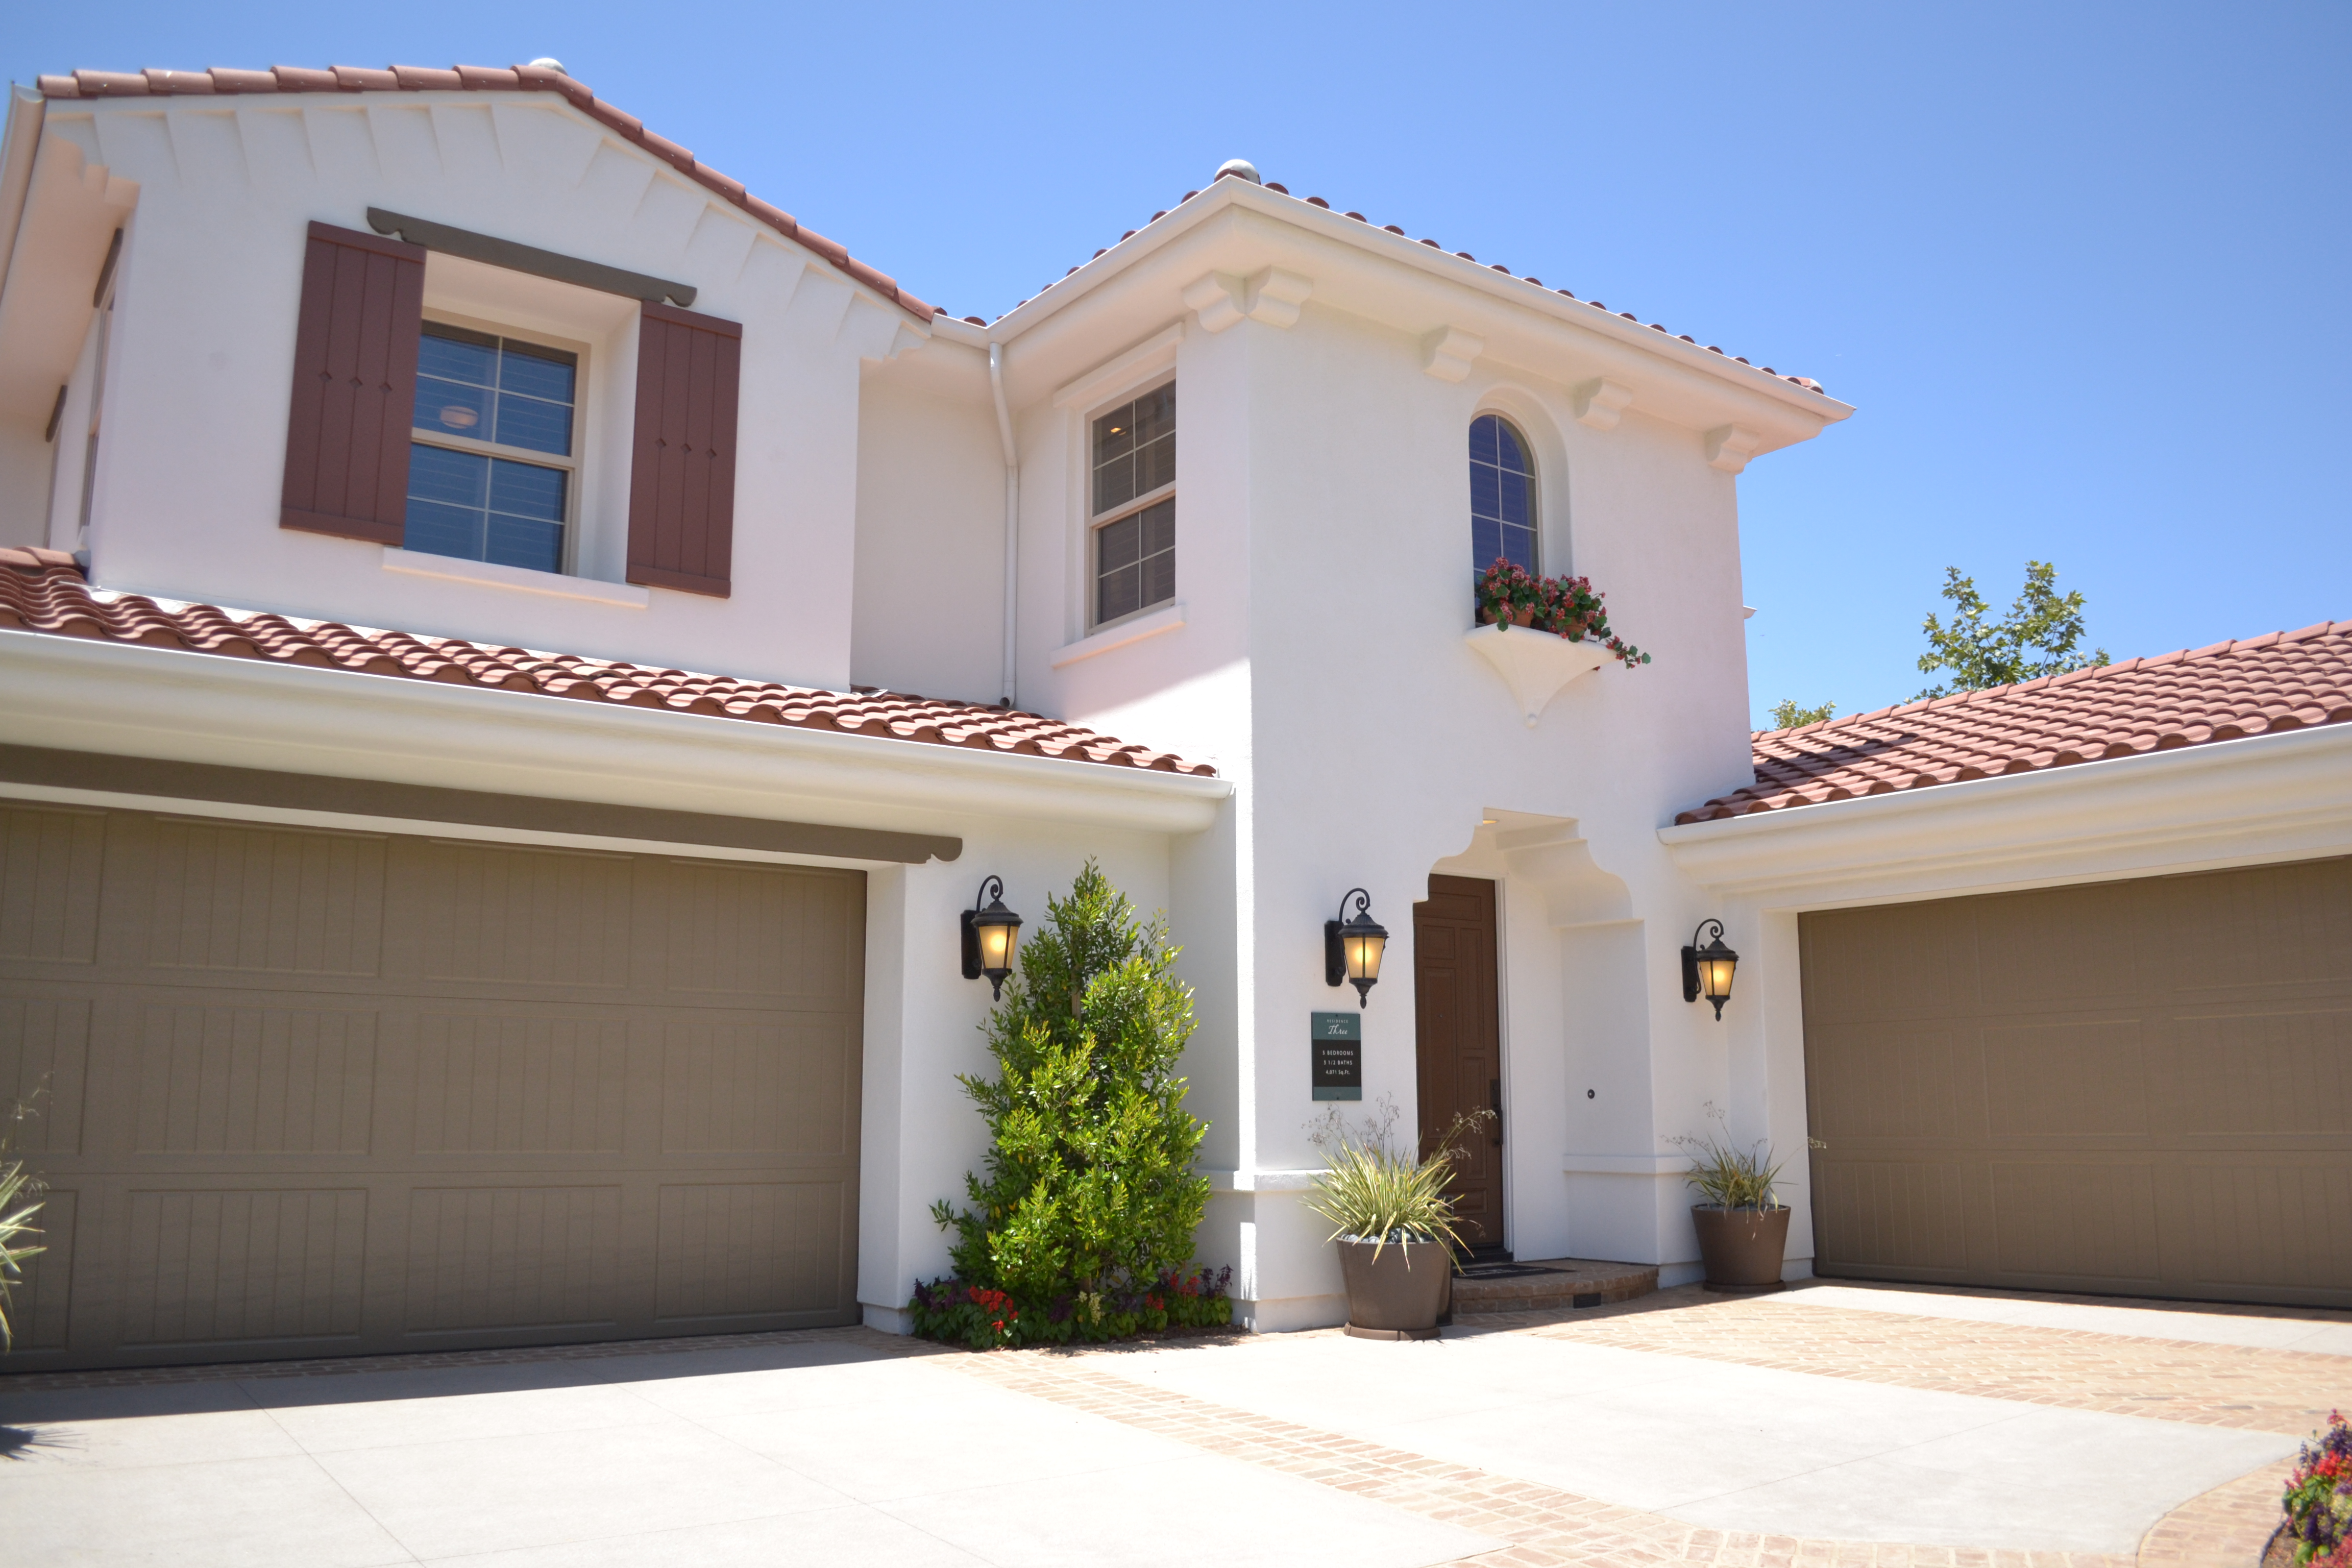 Residential & Commercial Stucco